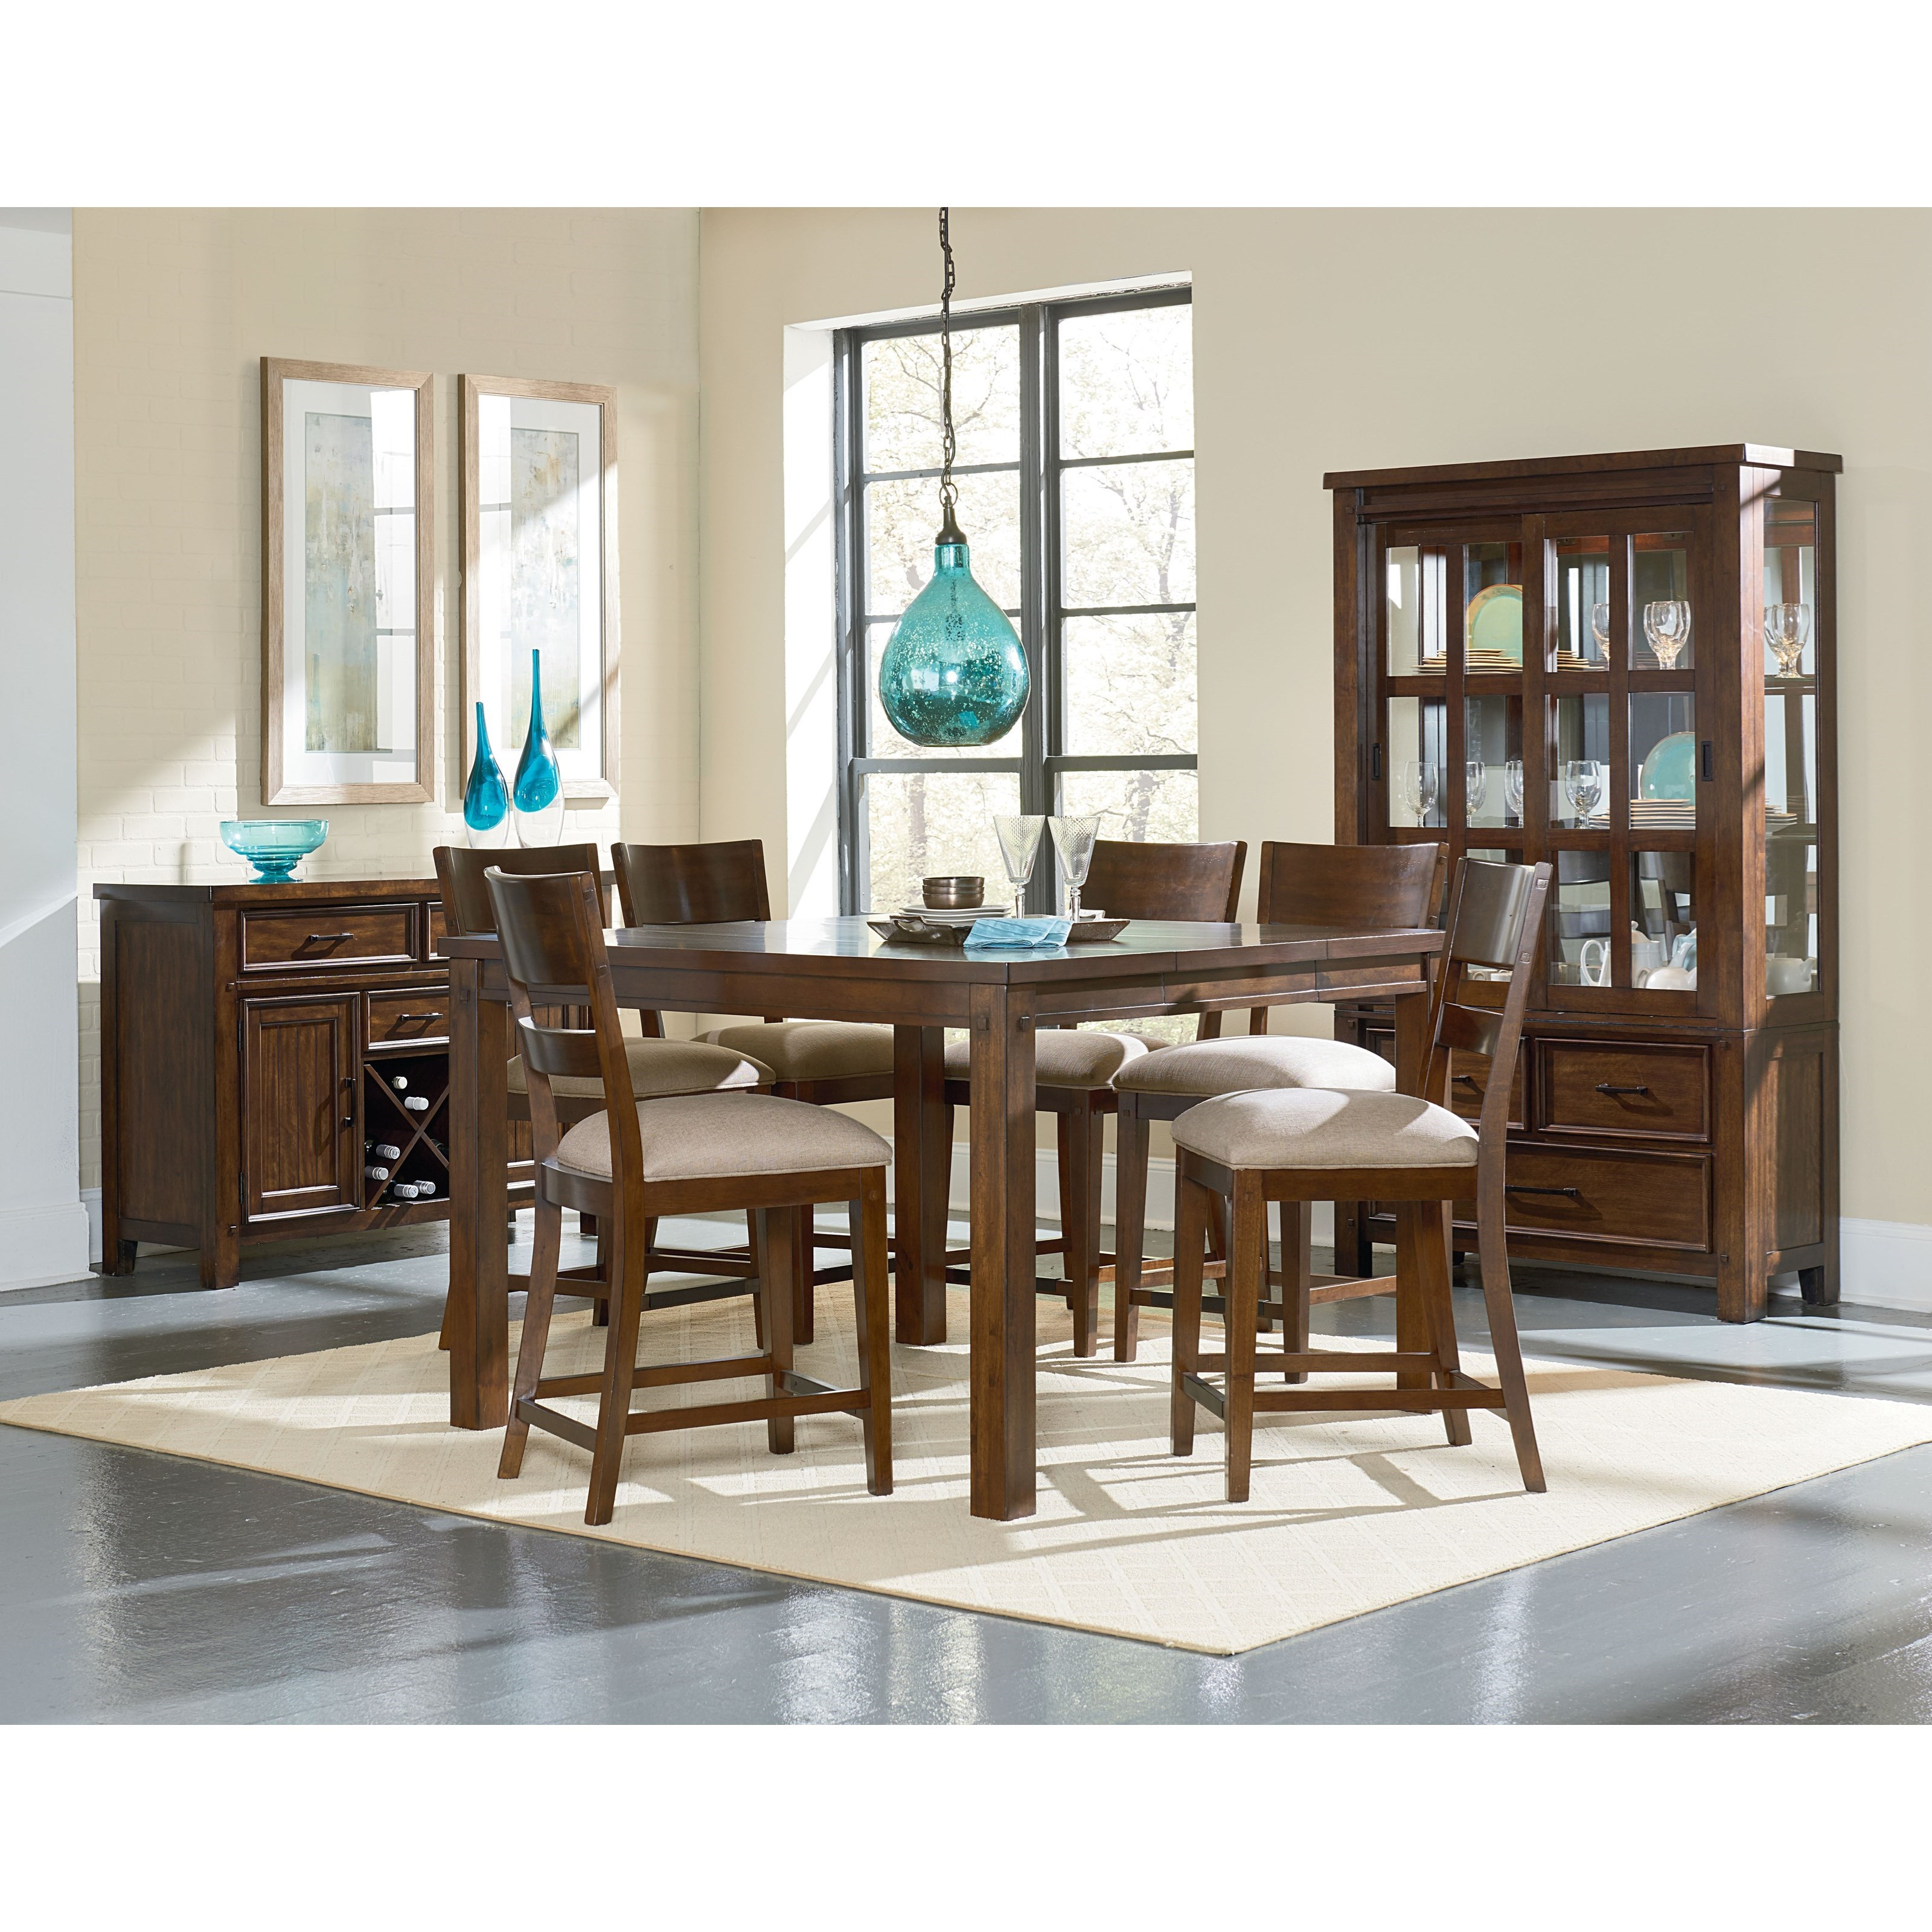 Zenith cameron casual dining room group efo furniture for Casual dining room